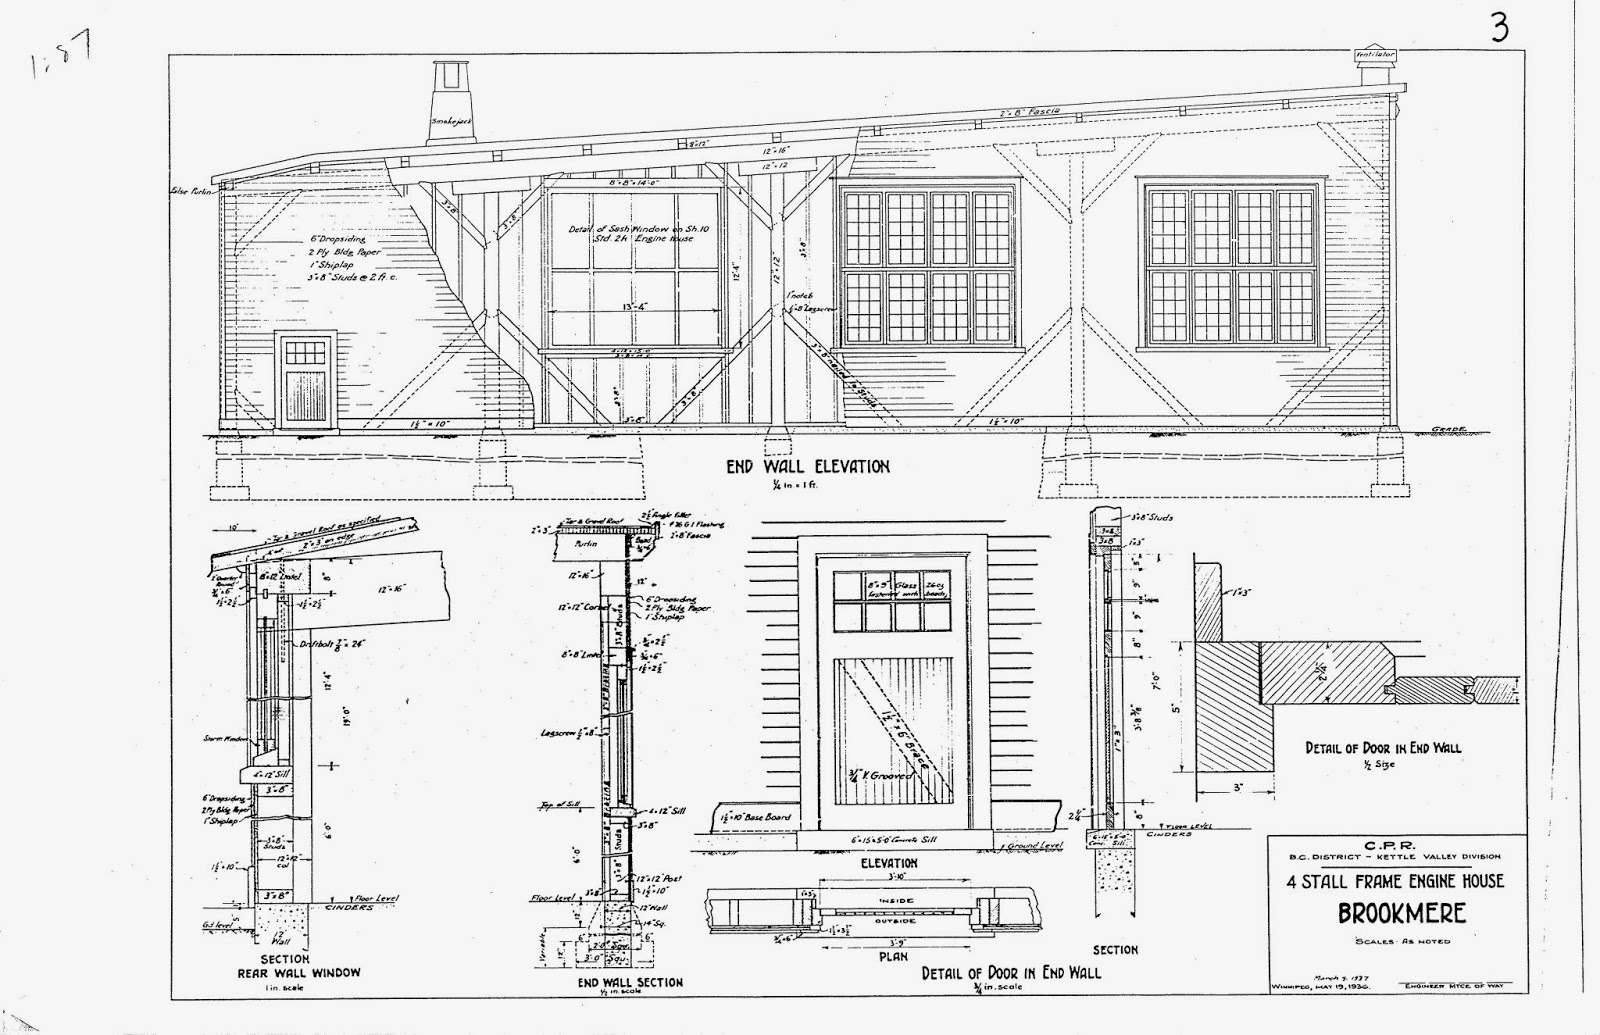 Kettle Valley Model Railway Brookmere Roundhouses I Ii 427 Engine Diagram Here Is A Drawing Of Smoke Jack That Predated The One Shown In Page 1 It Differs Principally Not Having Tapered Sides But This Included